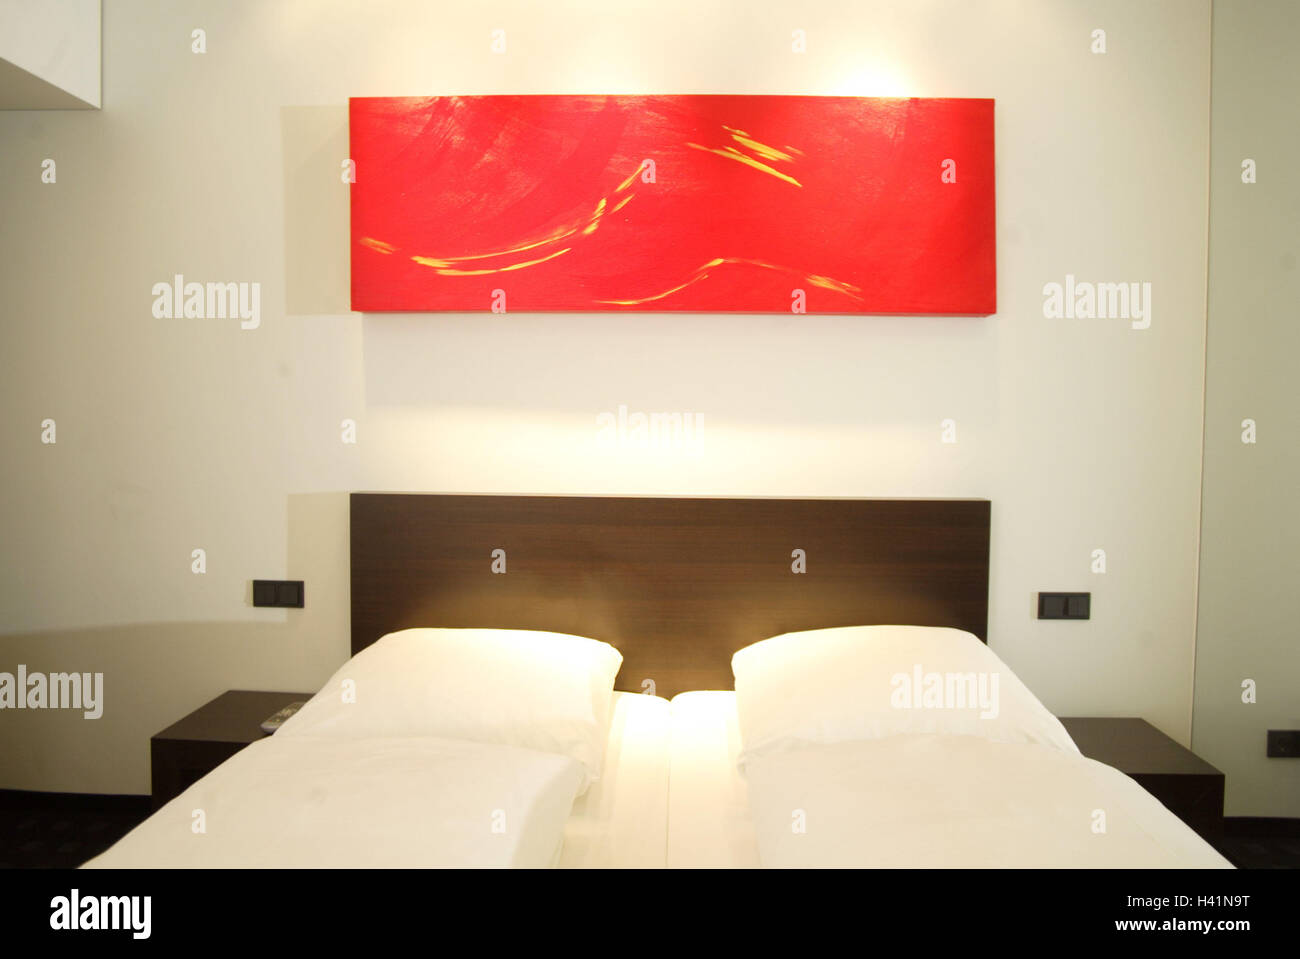 Room Bed Hotel Beds Bedding Quilt Er Cleanly Substantially White Bedside Tables Night Small Bo Light Switches